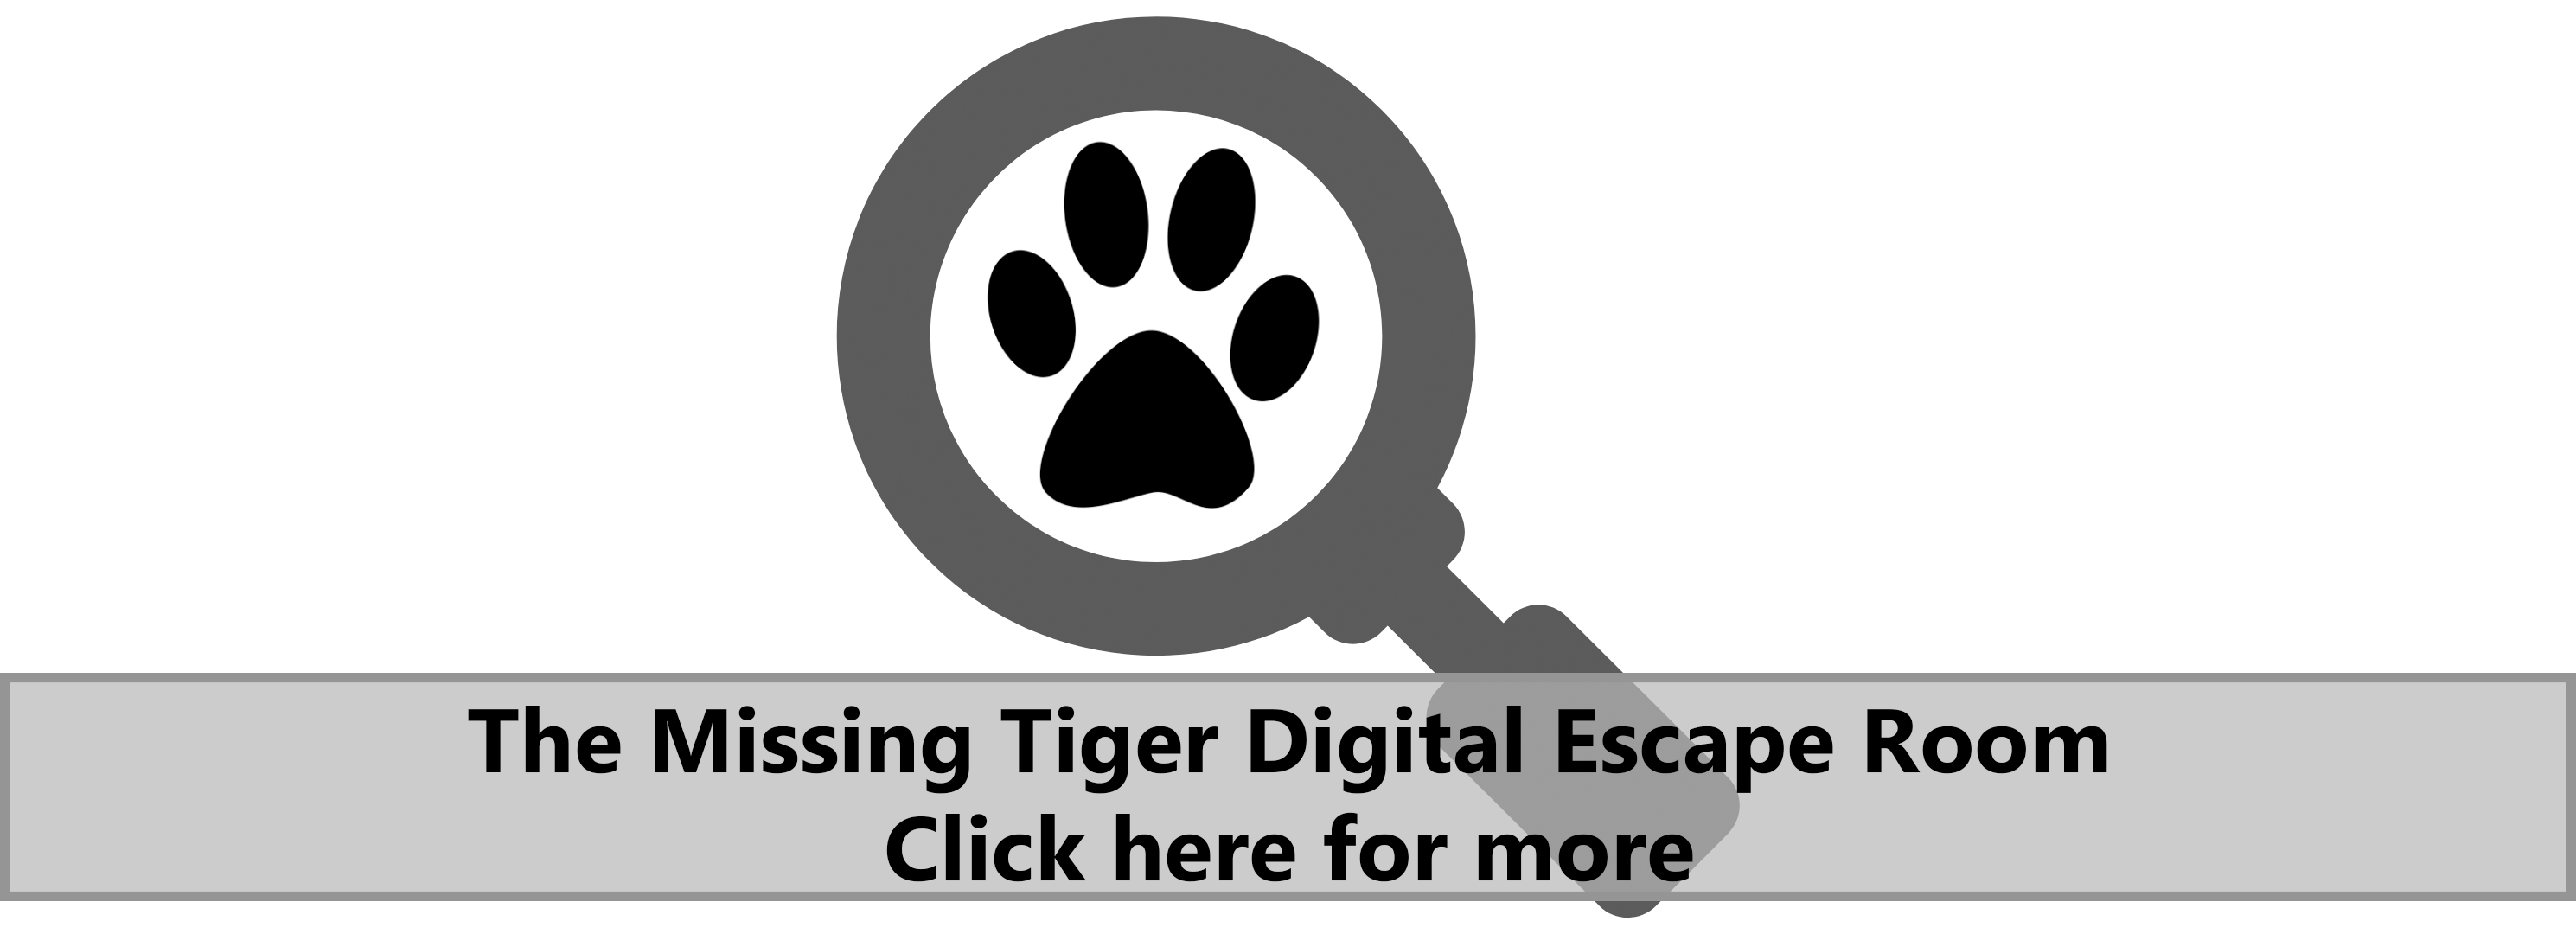 The Missing Tiger Digital Escape Room. Click here for more.